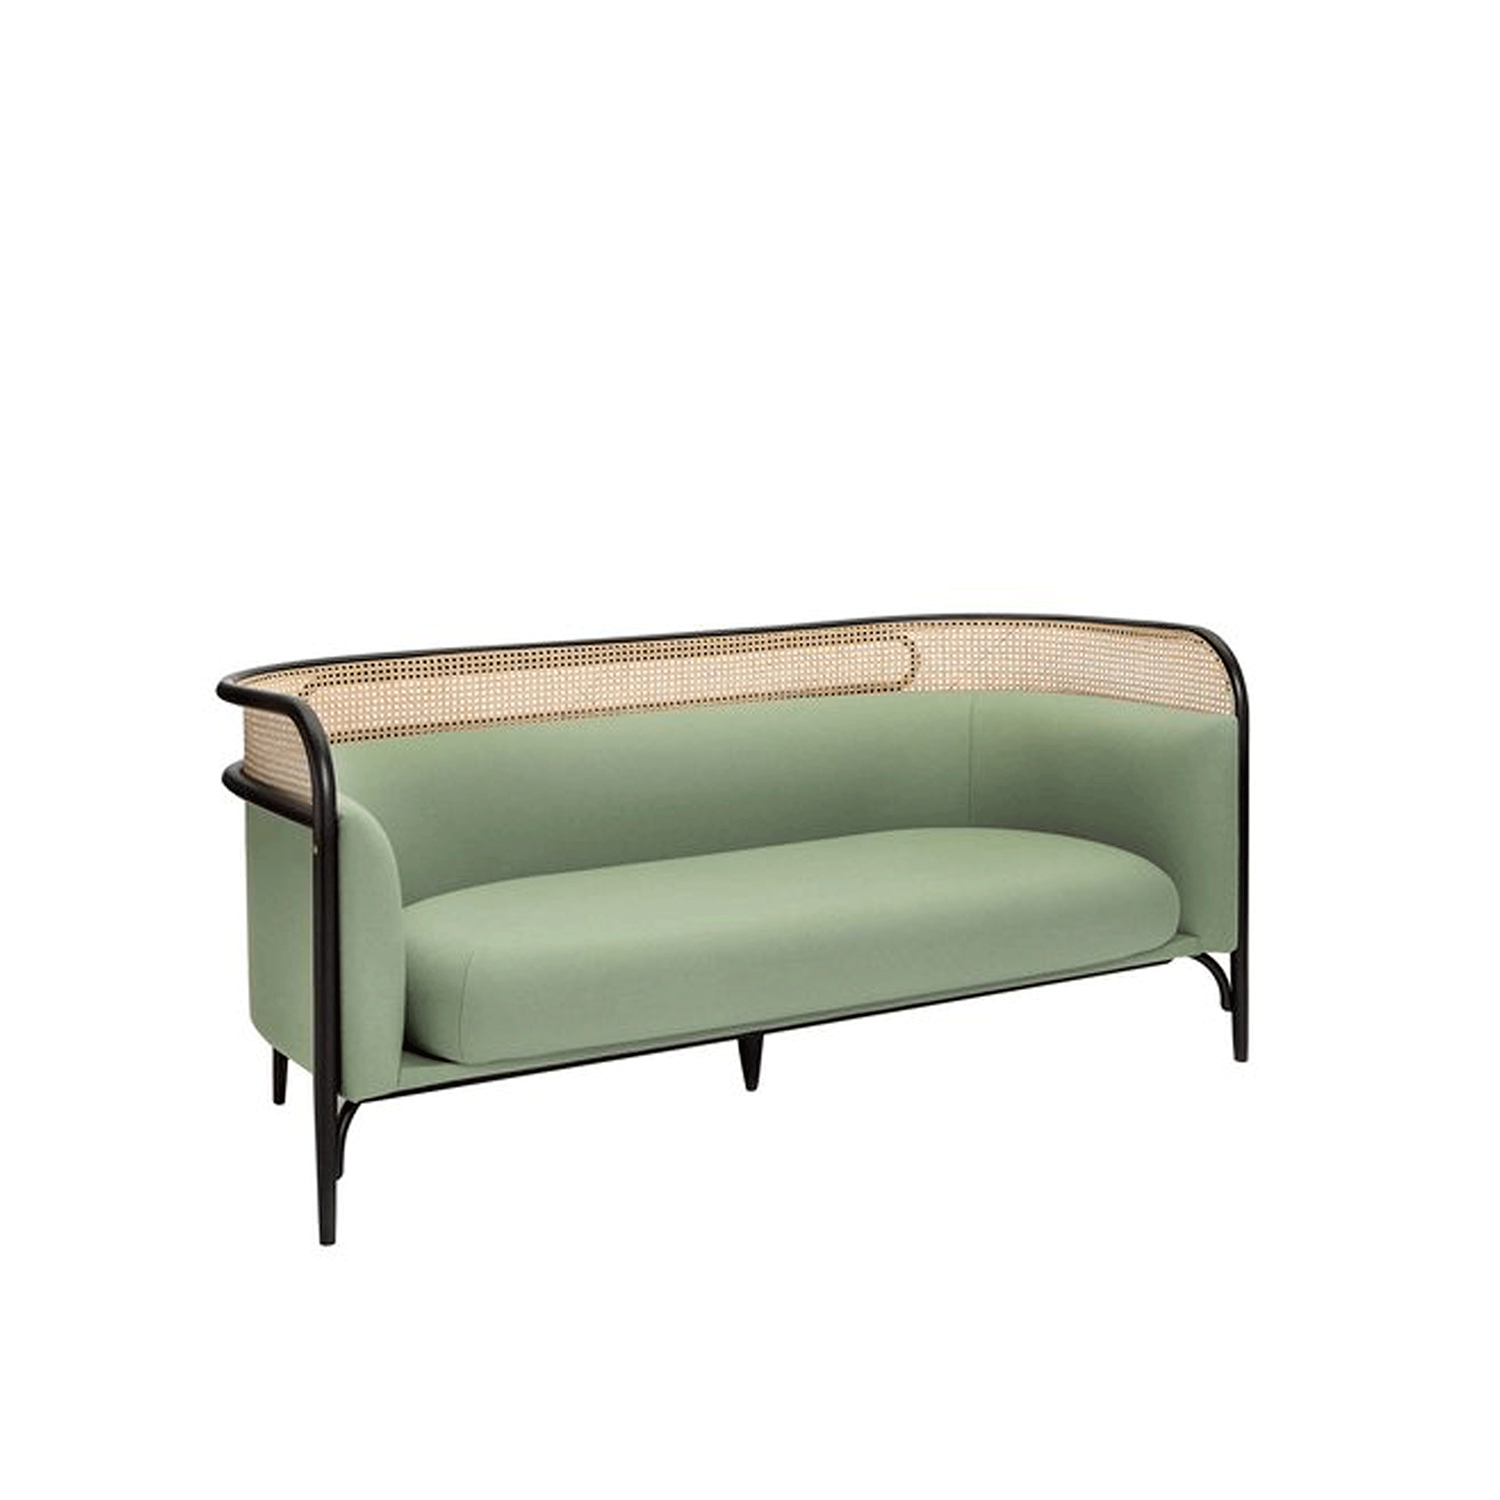 Targa 2-Seat Sofa - Combining the iconic steam-bent beechwood that creates a unique enveloping frame, this sofa was designed by the Italian-Danish designer duo GamFratesi in 2015. Equally stunning in a public space that prefers an intimate effect or as a magnificent statement in an eclectic home, this sofa will be eye-catching. Mixing sinuous curves and straight lines, plush cushions and minimalist accents, this piece will make a statement in any interior.